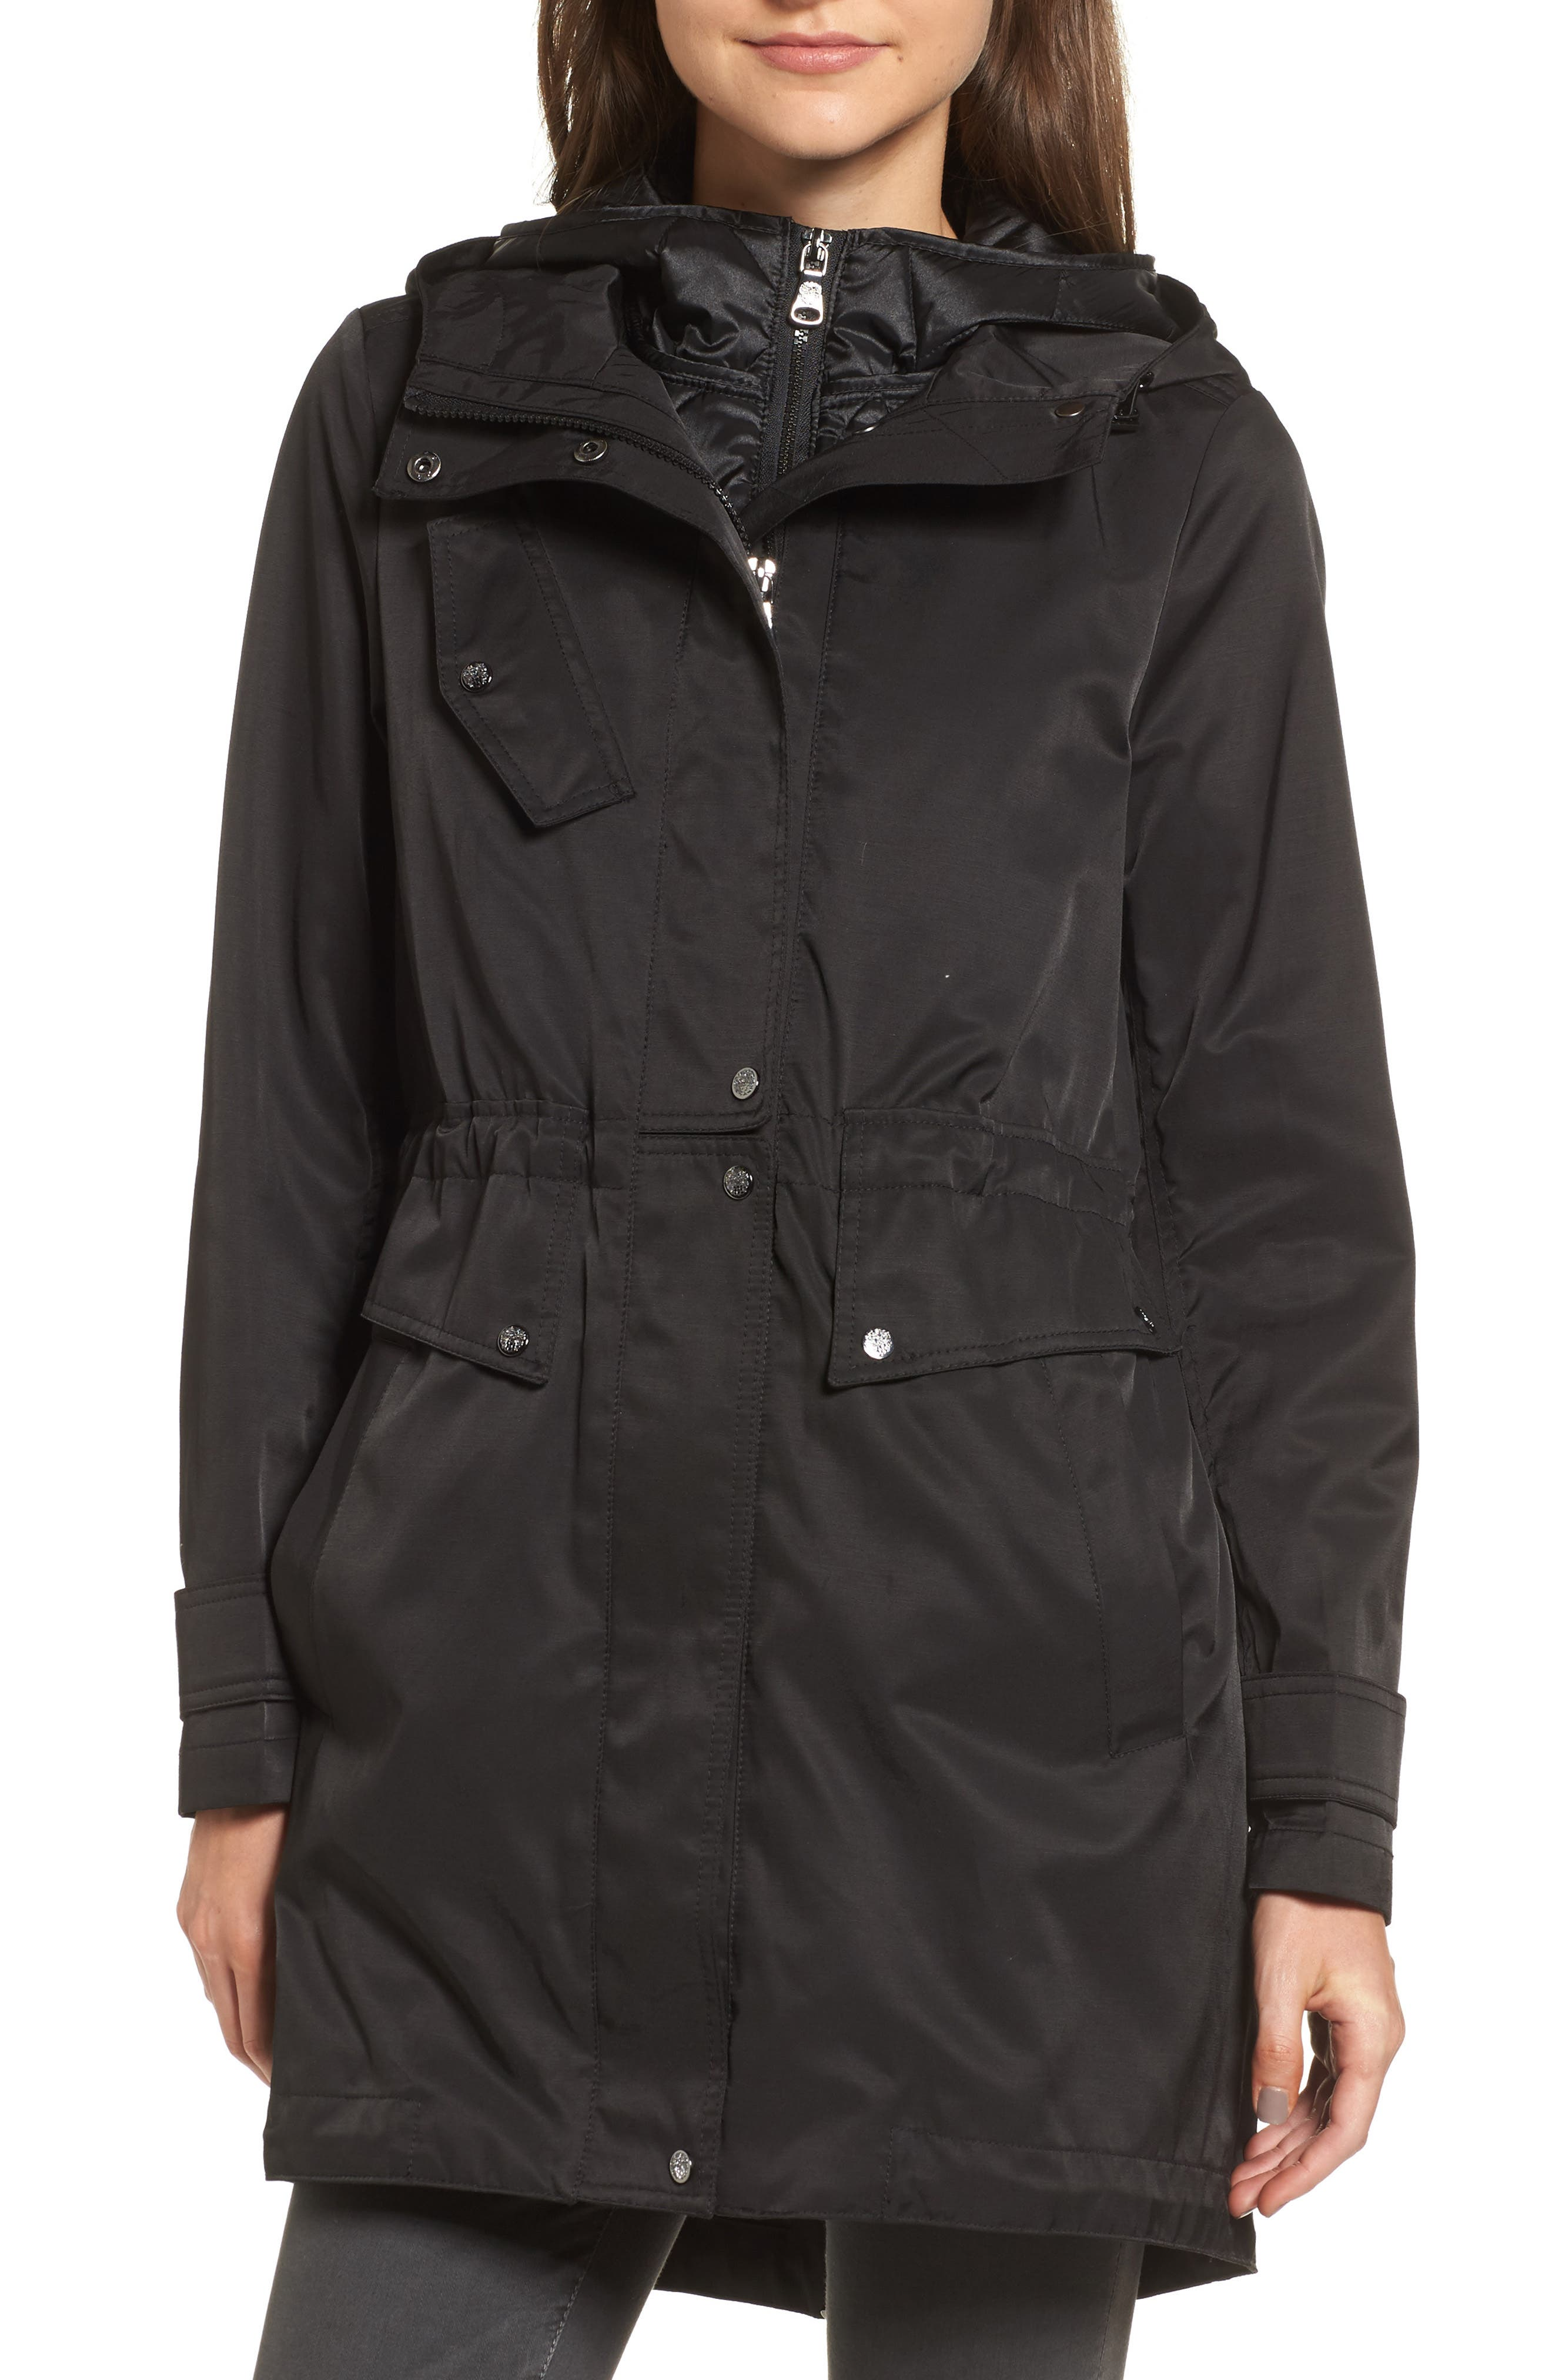 Alternate Image 1 Selected - Vince Camuto Parka with Detachable Bib Insert